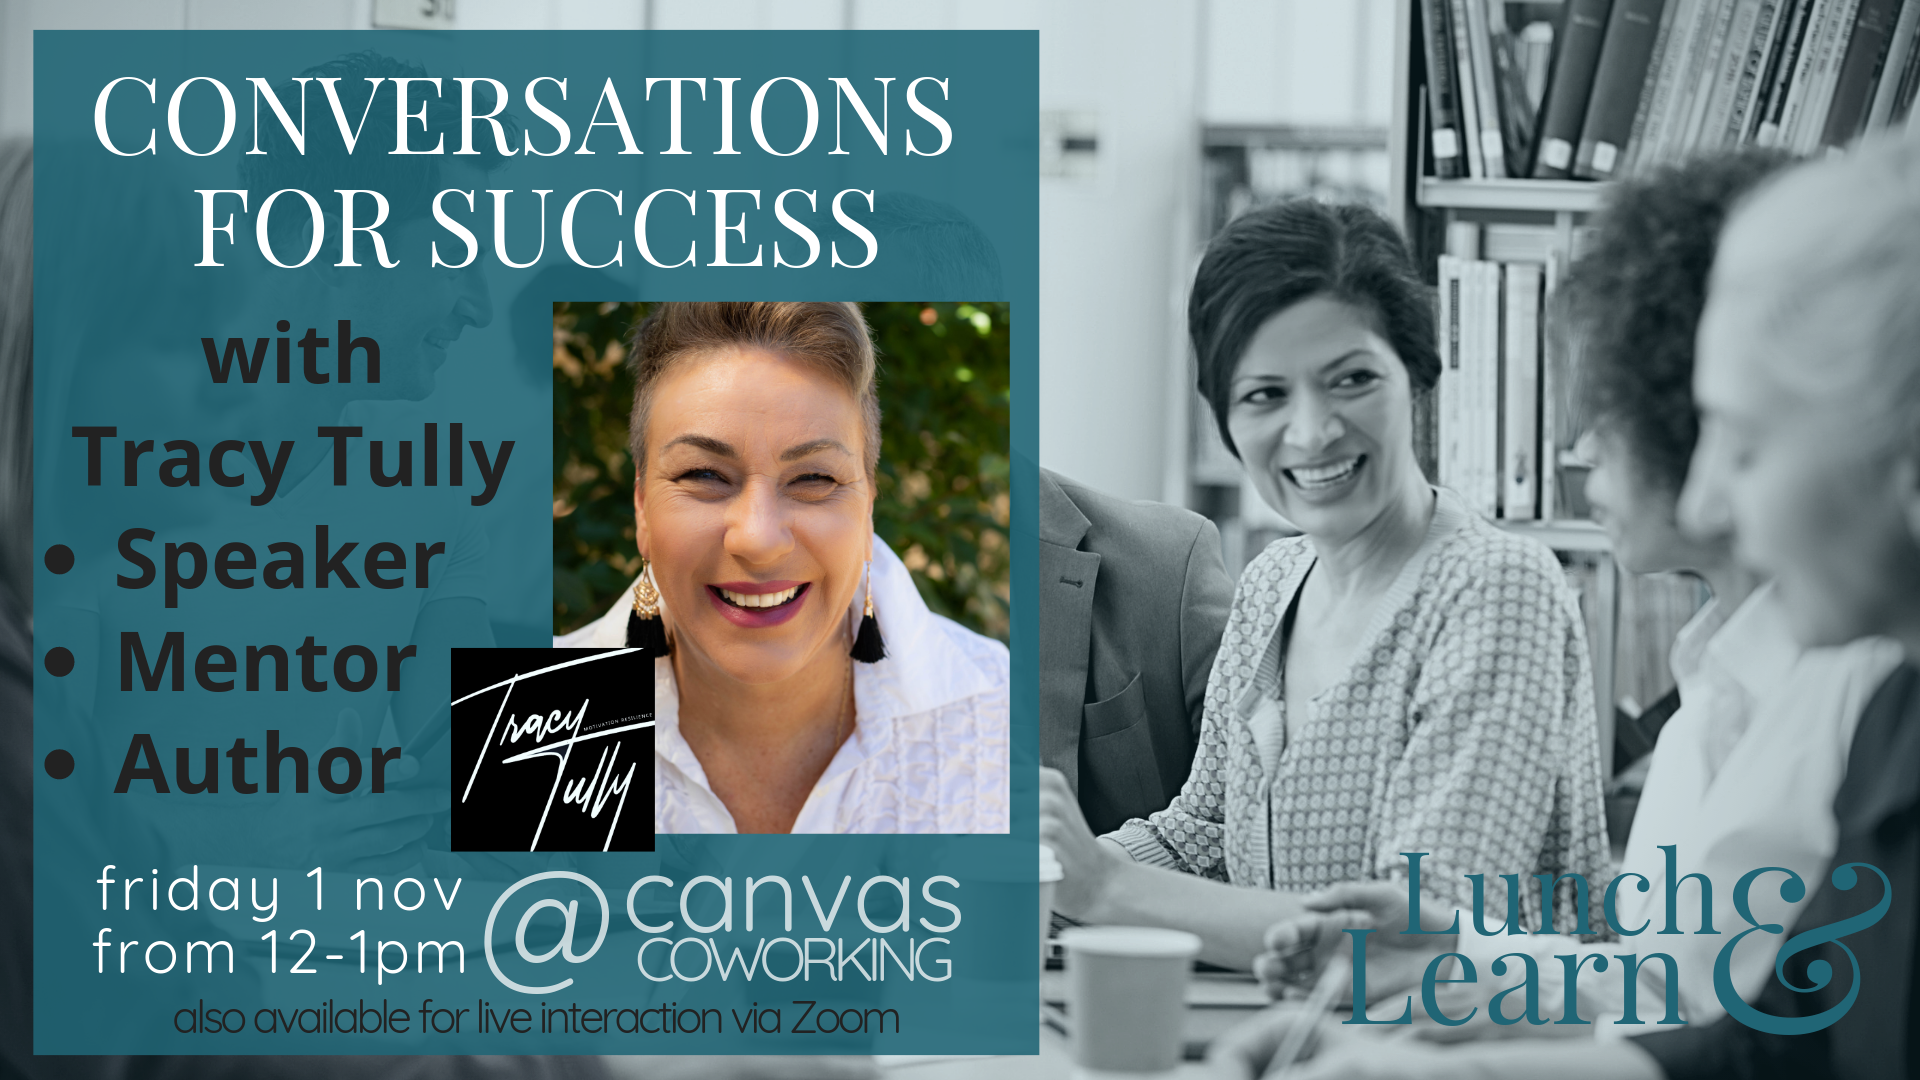 Conversations for Success with Tracy Tully, Lunch and Learn, Canvas Coworking, 1st November 2019